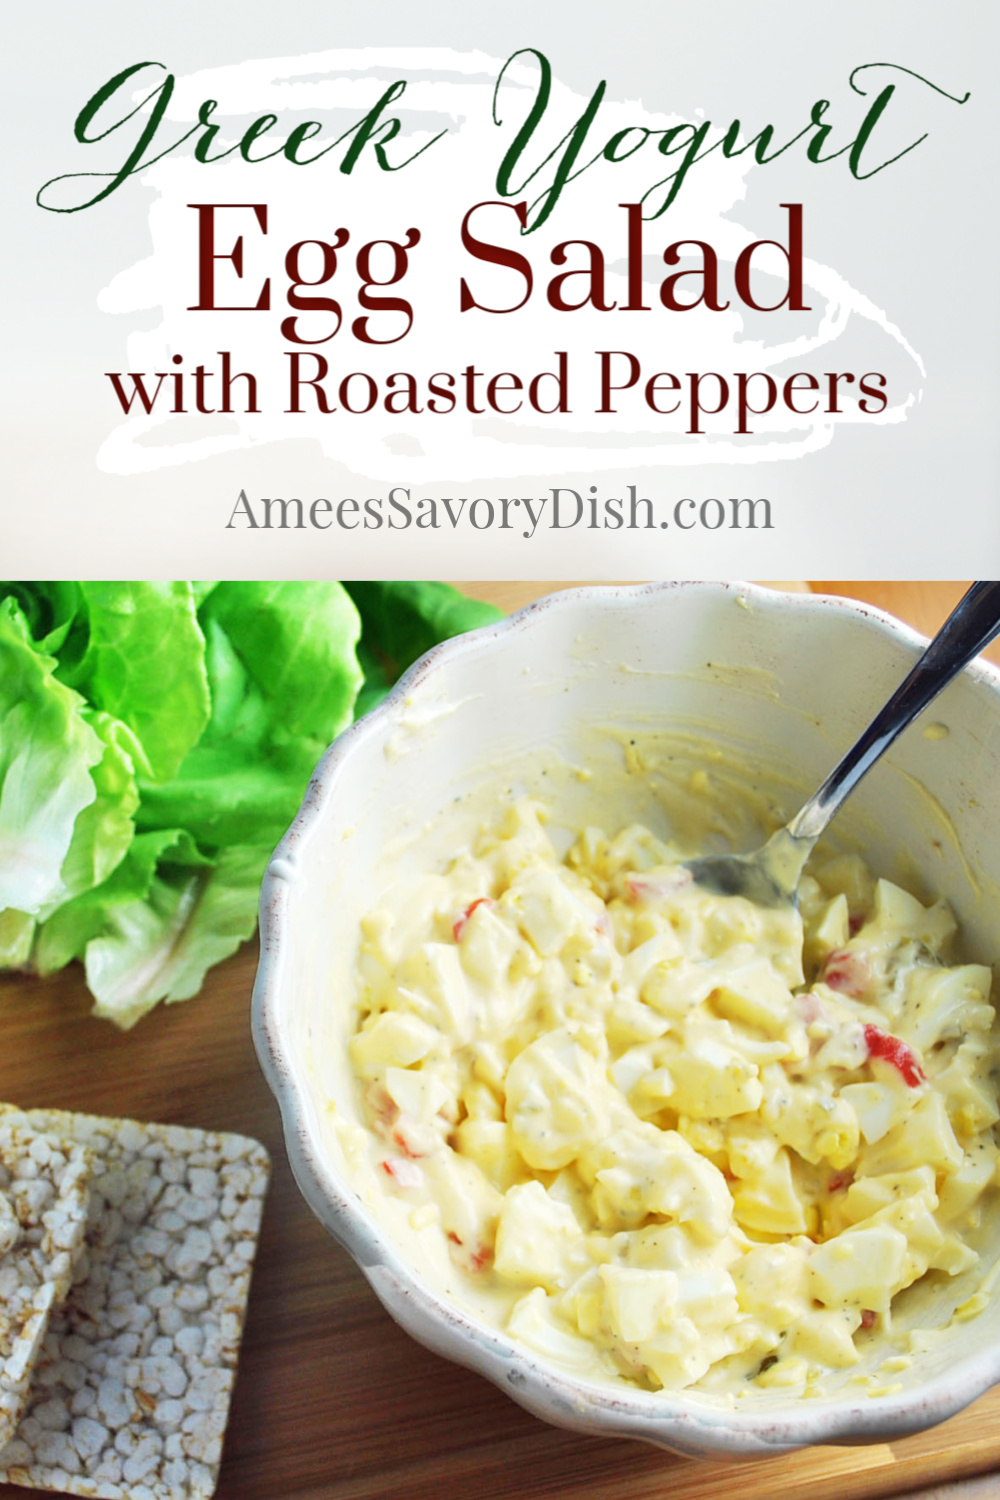 A simple recipe for egg salad made with Greek yogurt, mayonnaise, dijon mustard, relish, and roasted red peppers. This tasty egg salad recipe is perfect for meal prep! via @Ameecooks